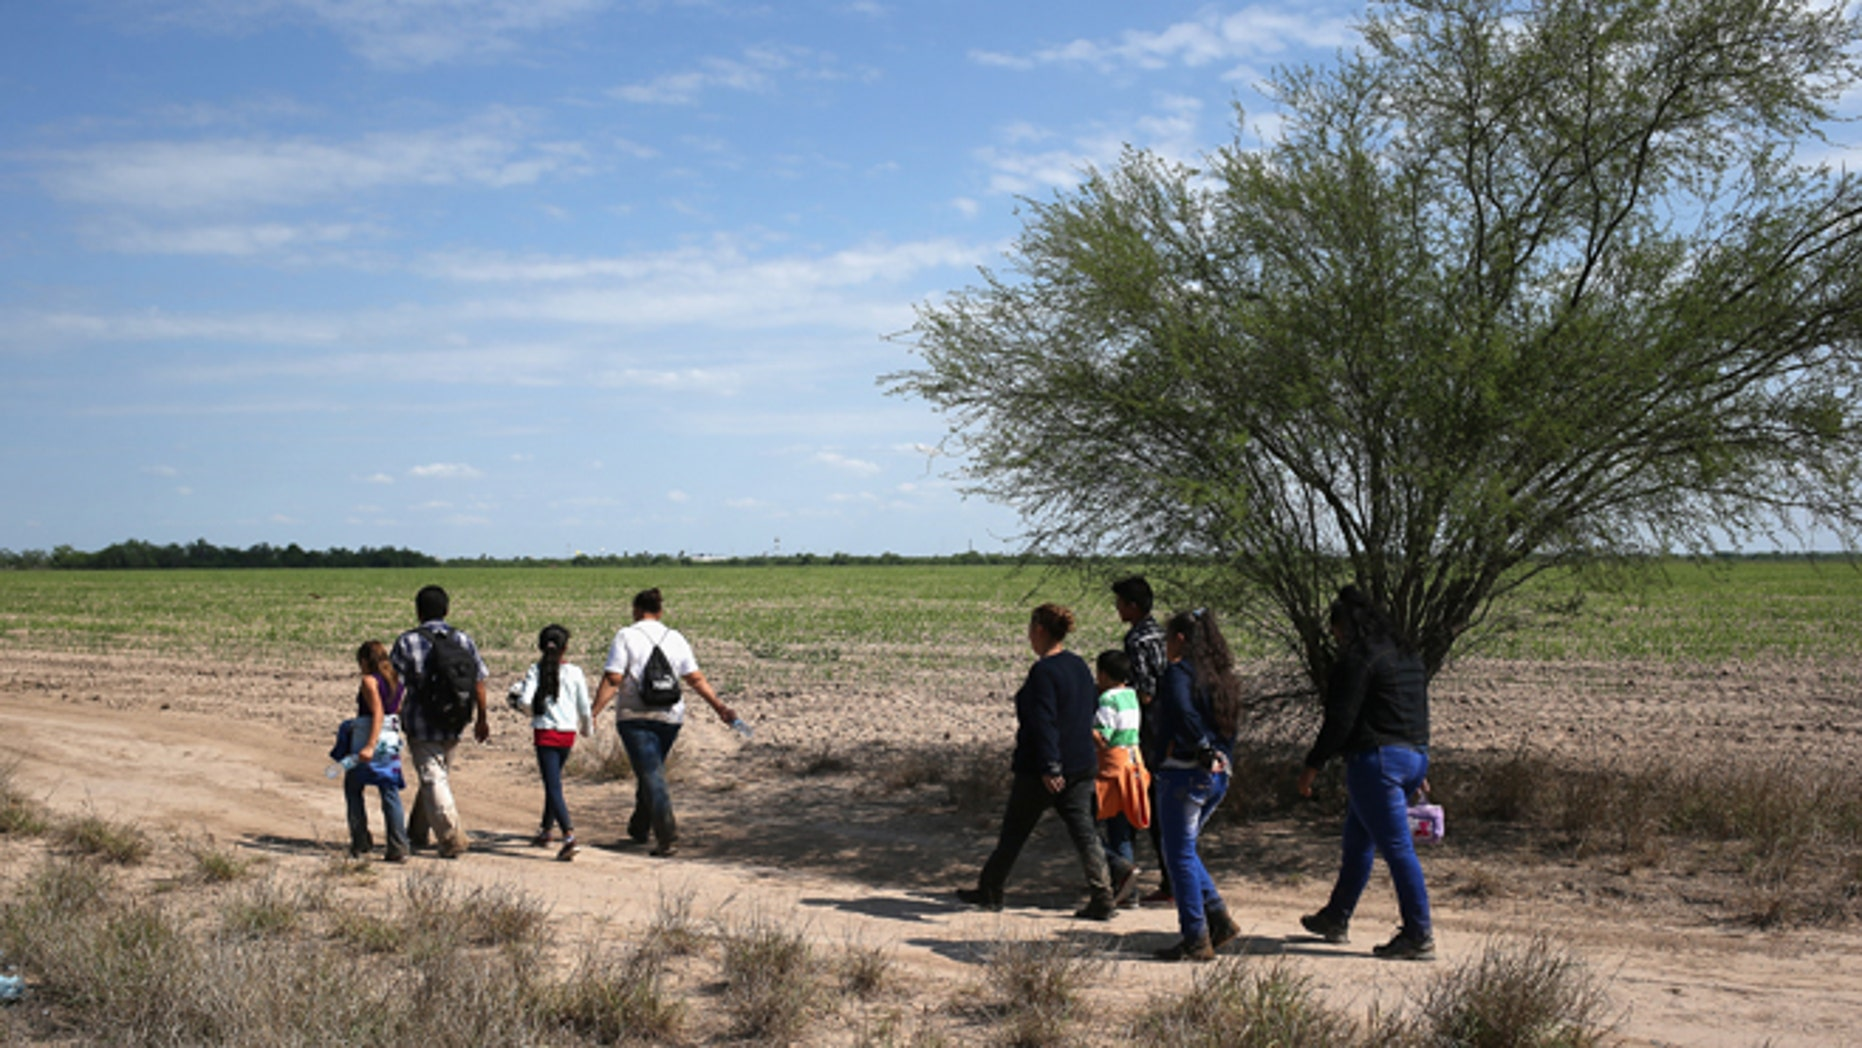 Central American families walk through the countryside after crossing from Mexico on April 14, 2016 in Roma, Texas.